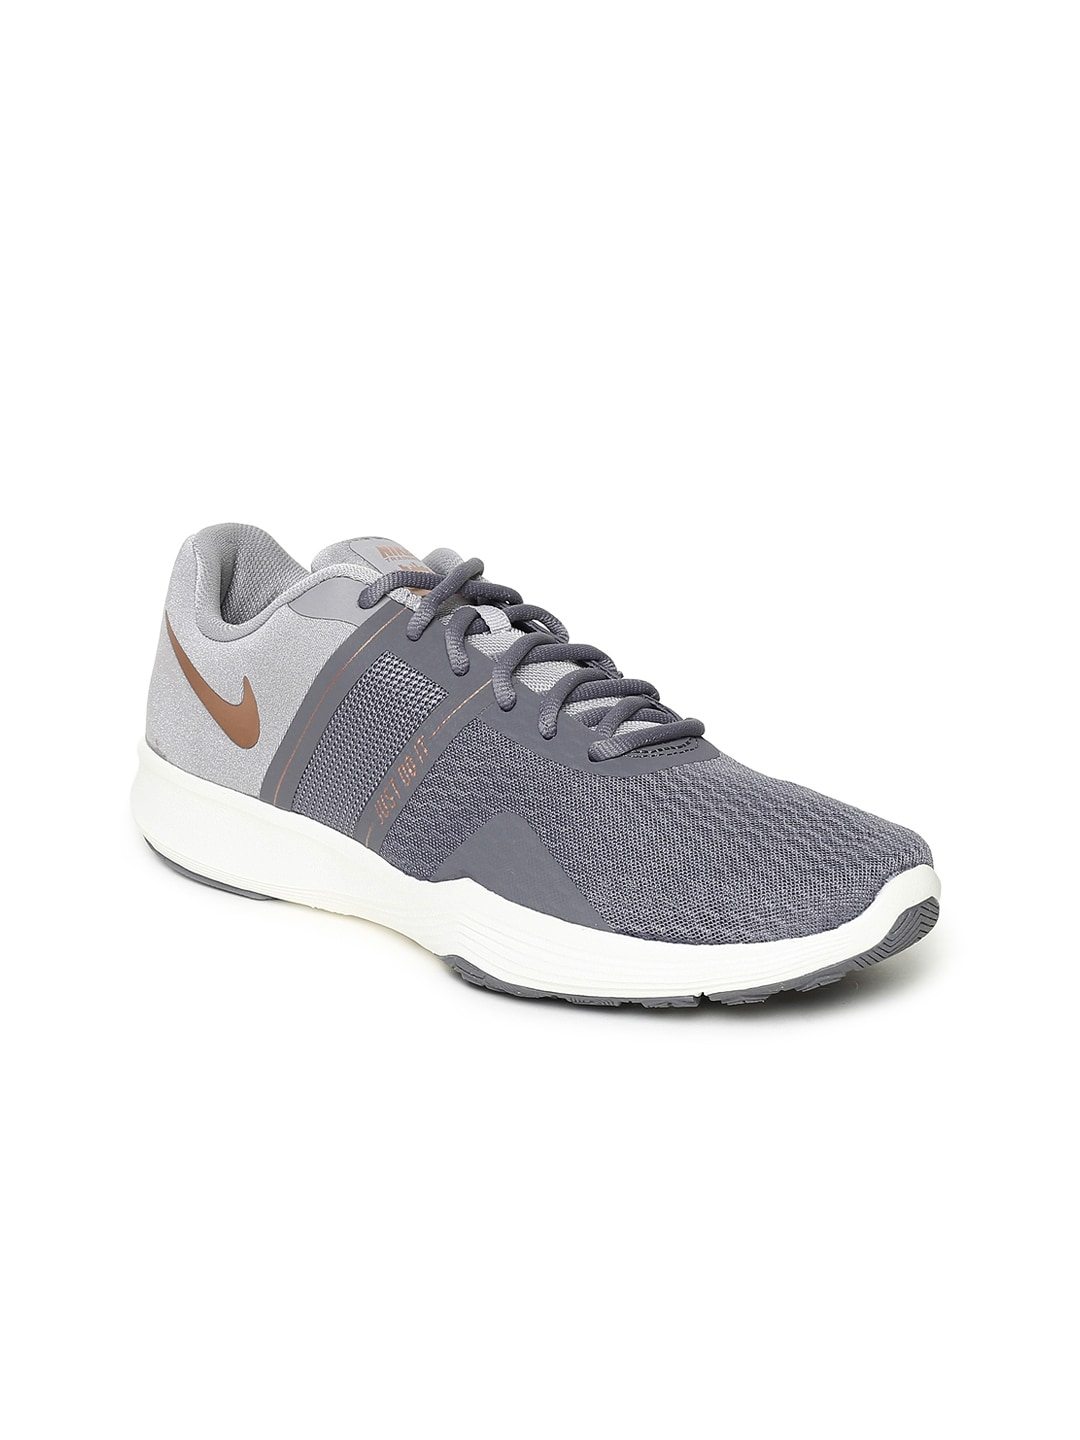 hot sales 10ee1 e4fad Women s Nike Shoes - Buy Nike Shoes for Women Online in India